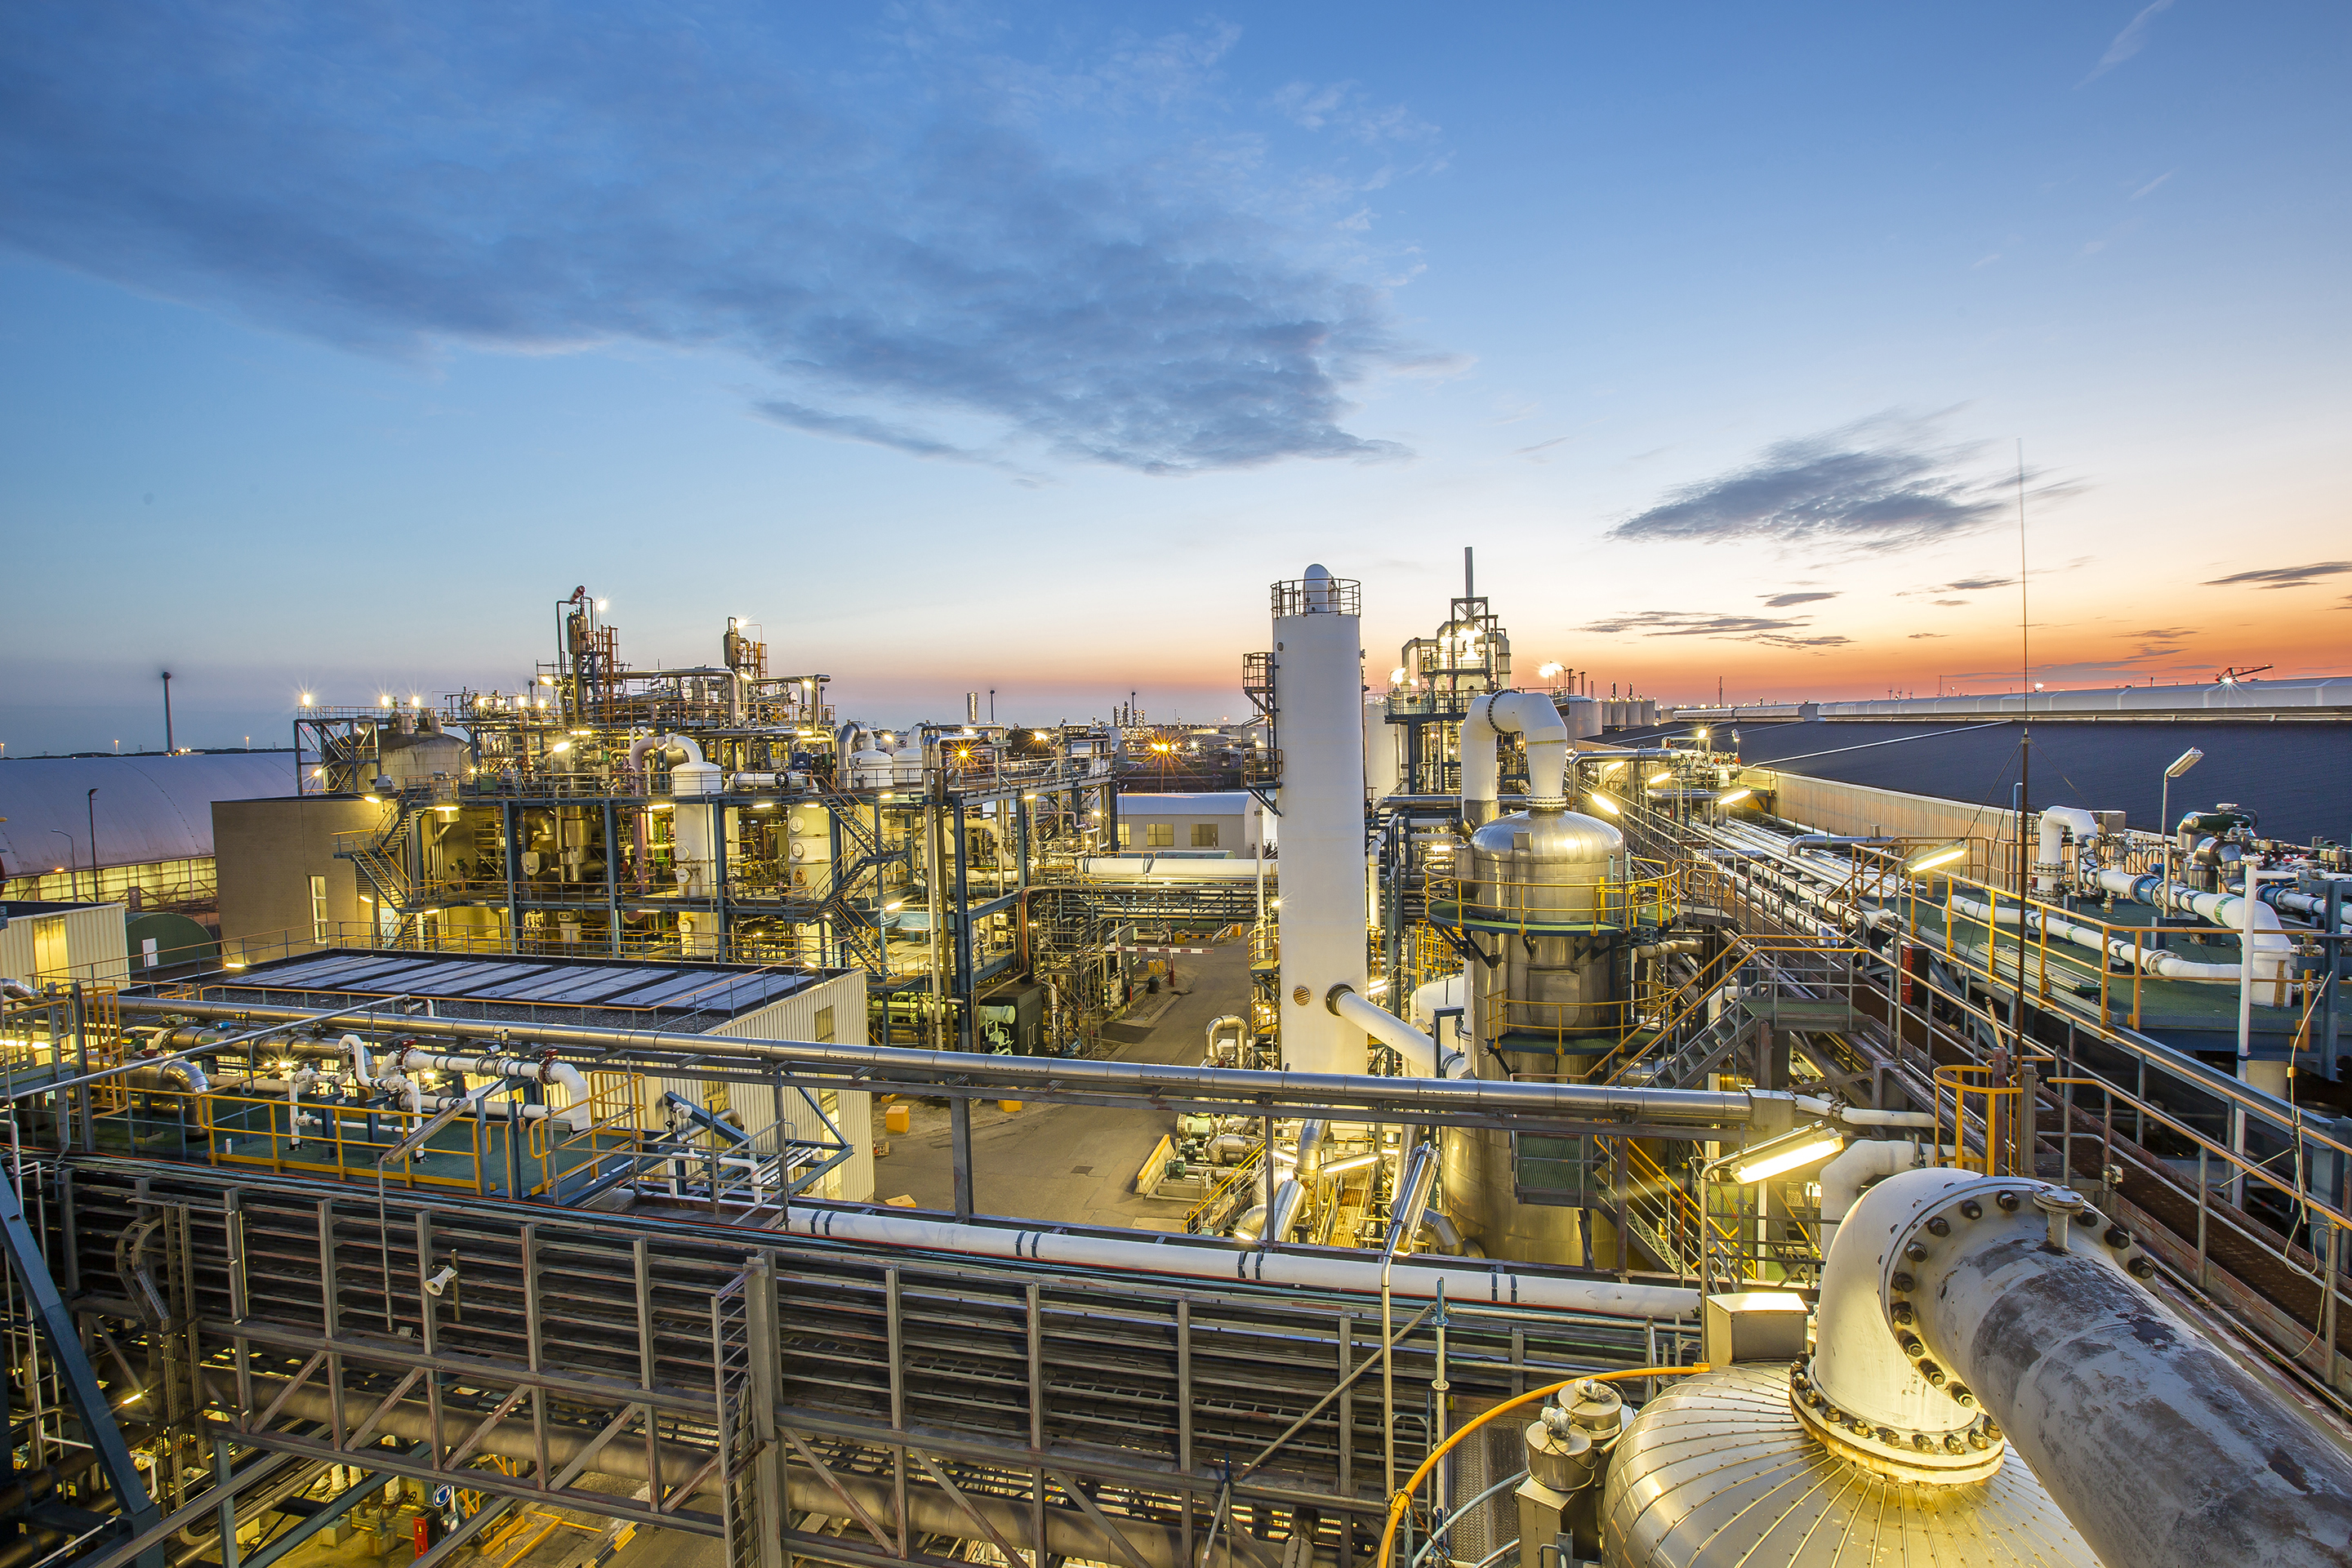 AkzoNobel Specialty Chemicals to upgrade Rotterdam chlor-alkali plant